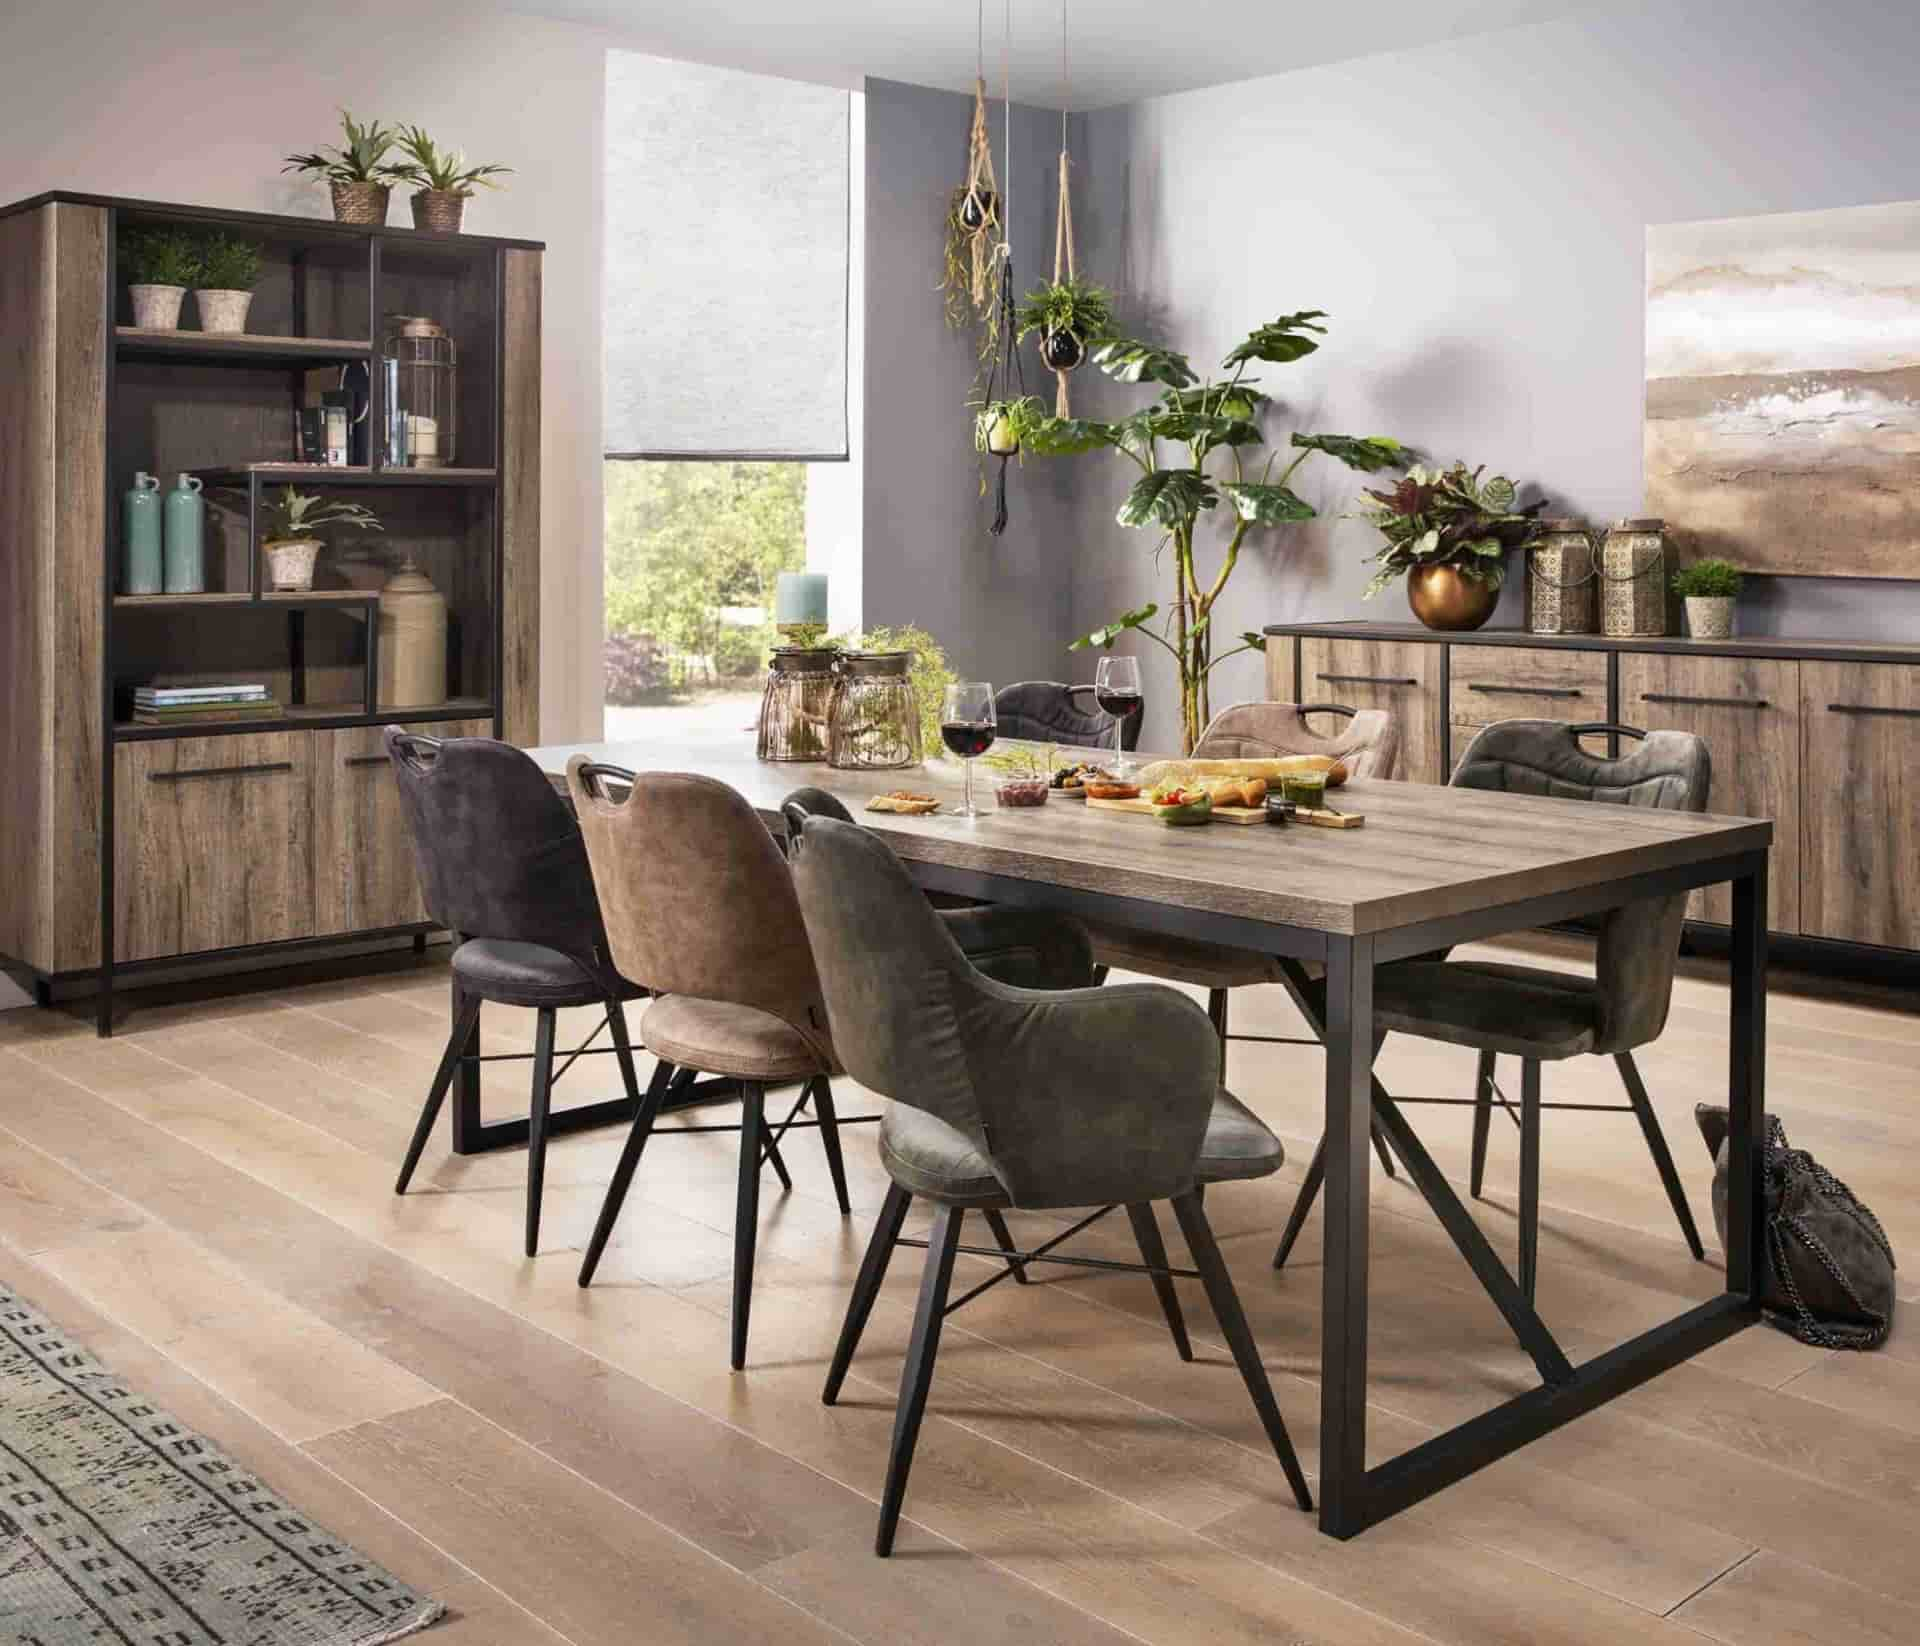 Wooden Furniture On A Wooden Floor? Our Tips!